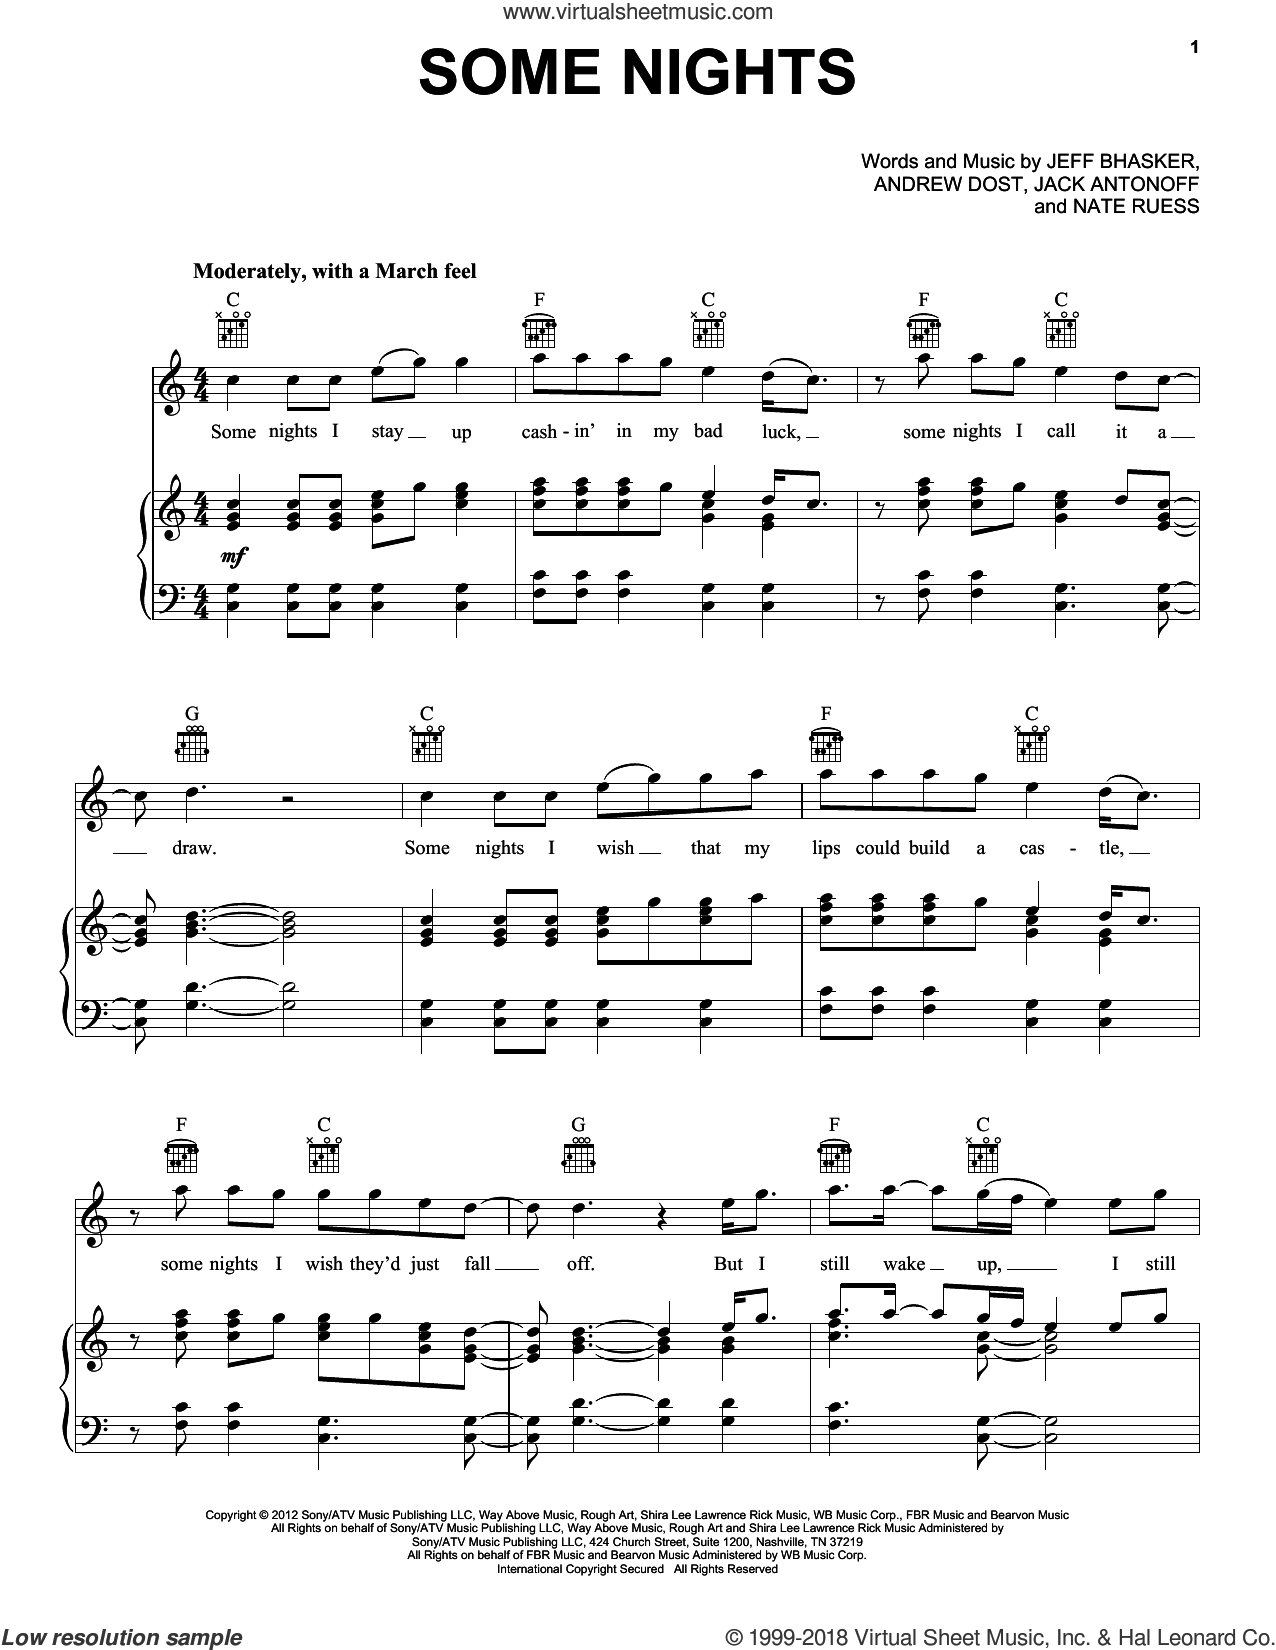 Some Nights sheet music for voice, piano or guitar by Nathaniel Ruess